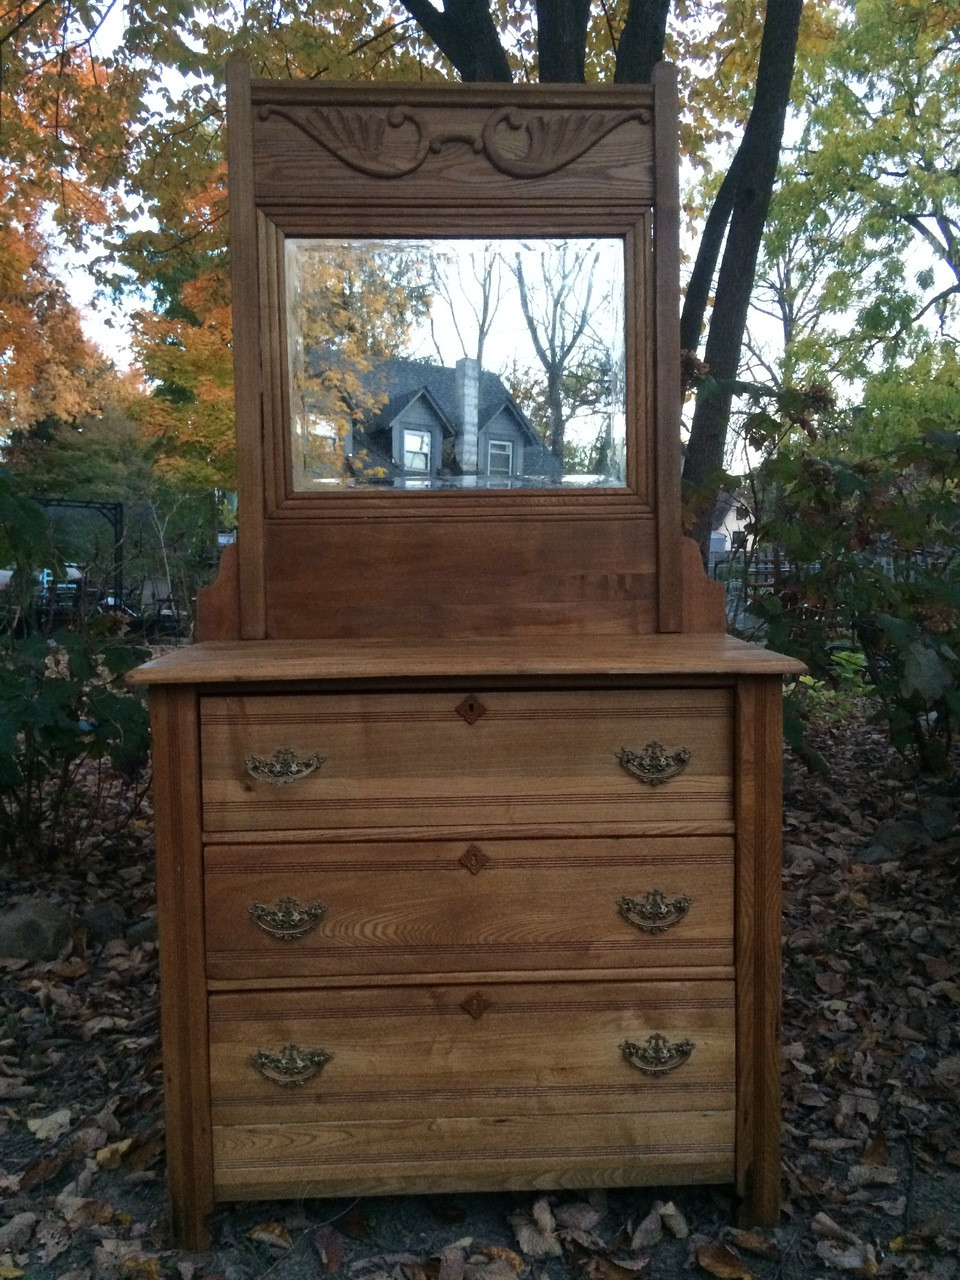 Antique Eastlake 3 Drawer Dresser W Mirror Forgotten Furniture,How To Get Rid Of Sugar Ants In House